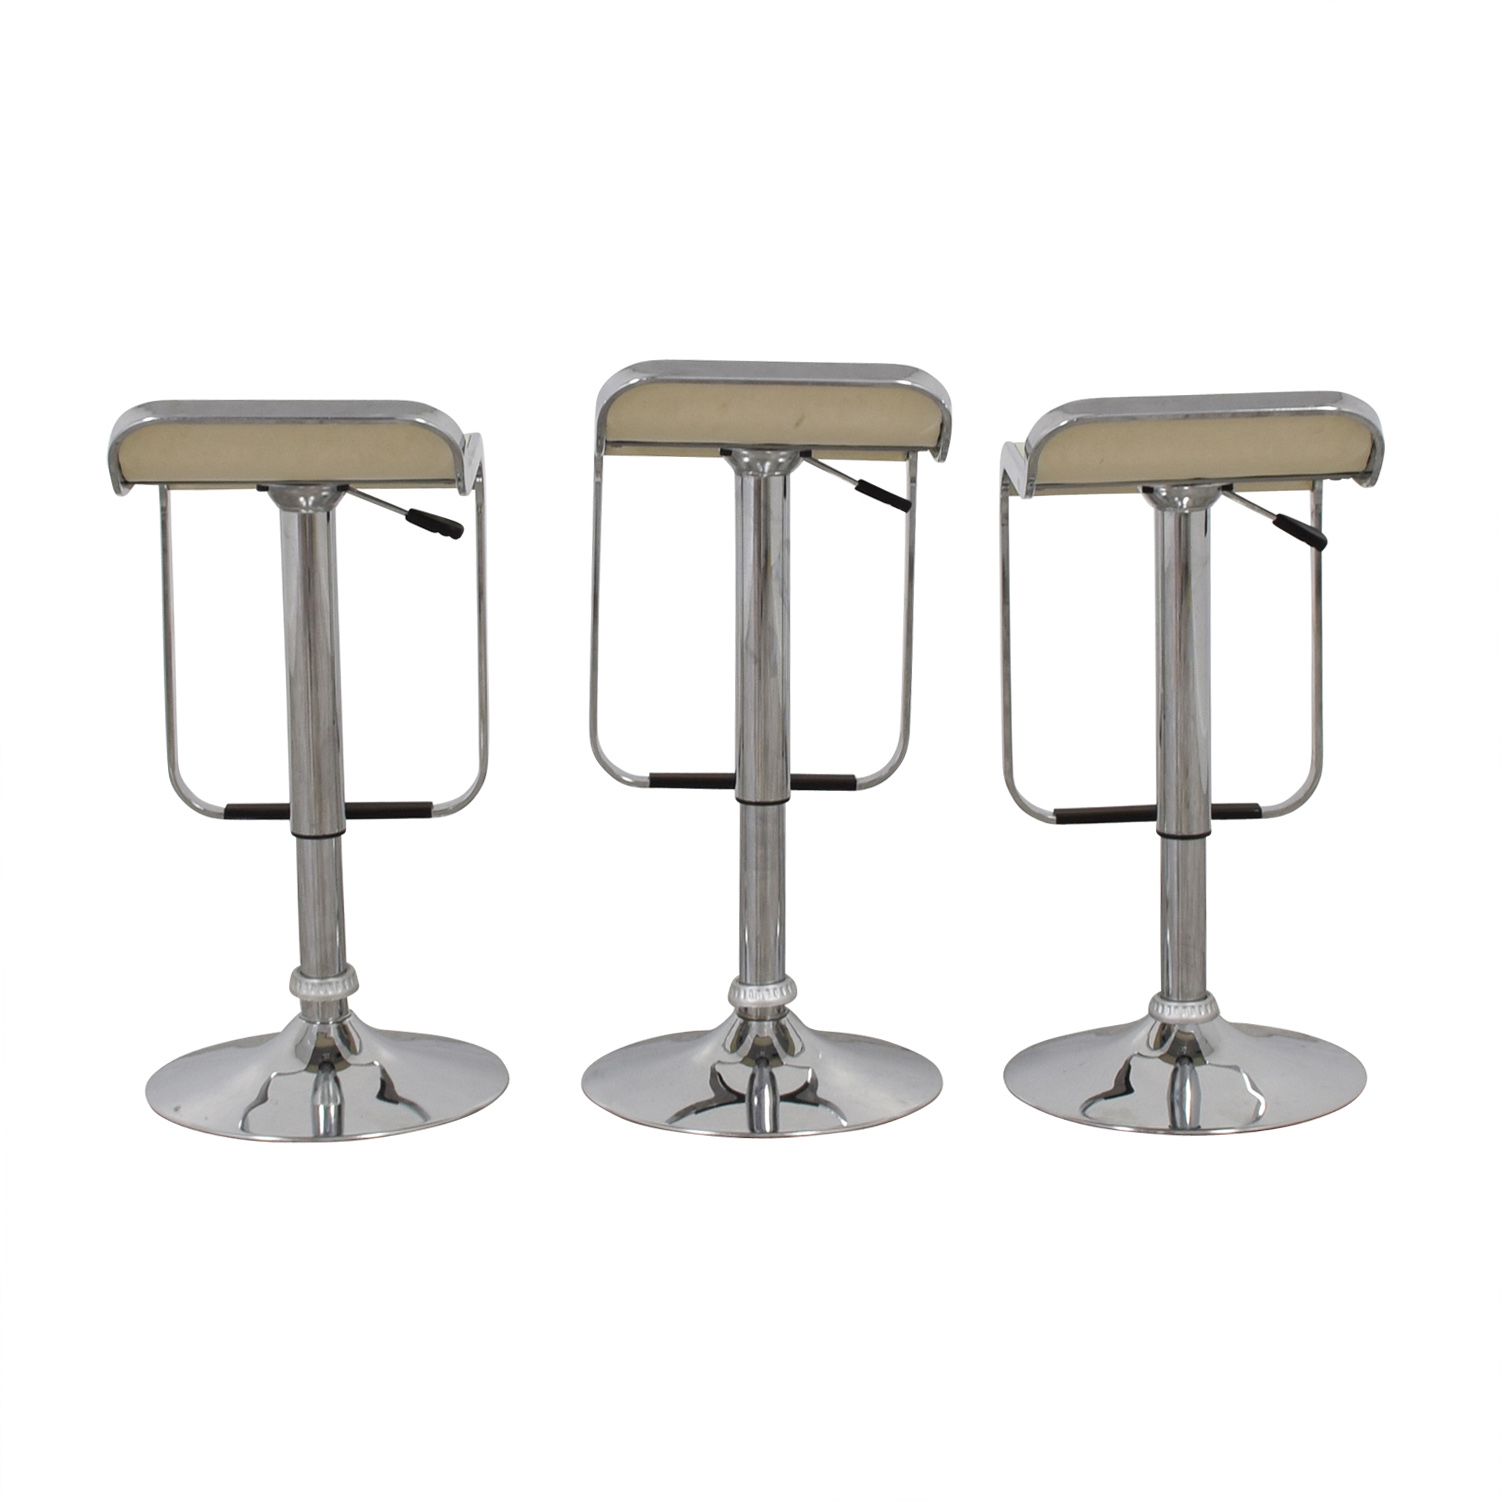 Pottery Barn Pottery Barn White and Chrome Stools Chairs